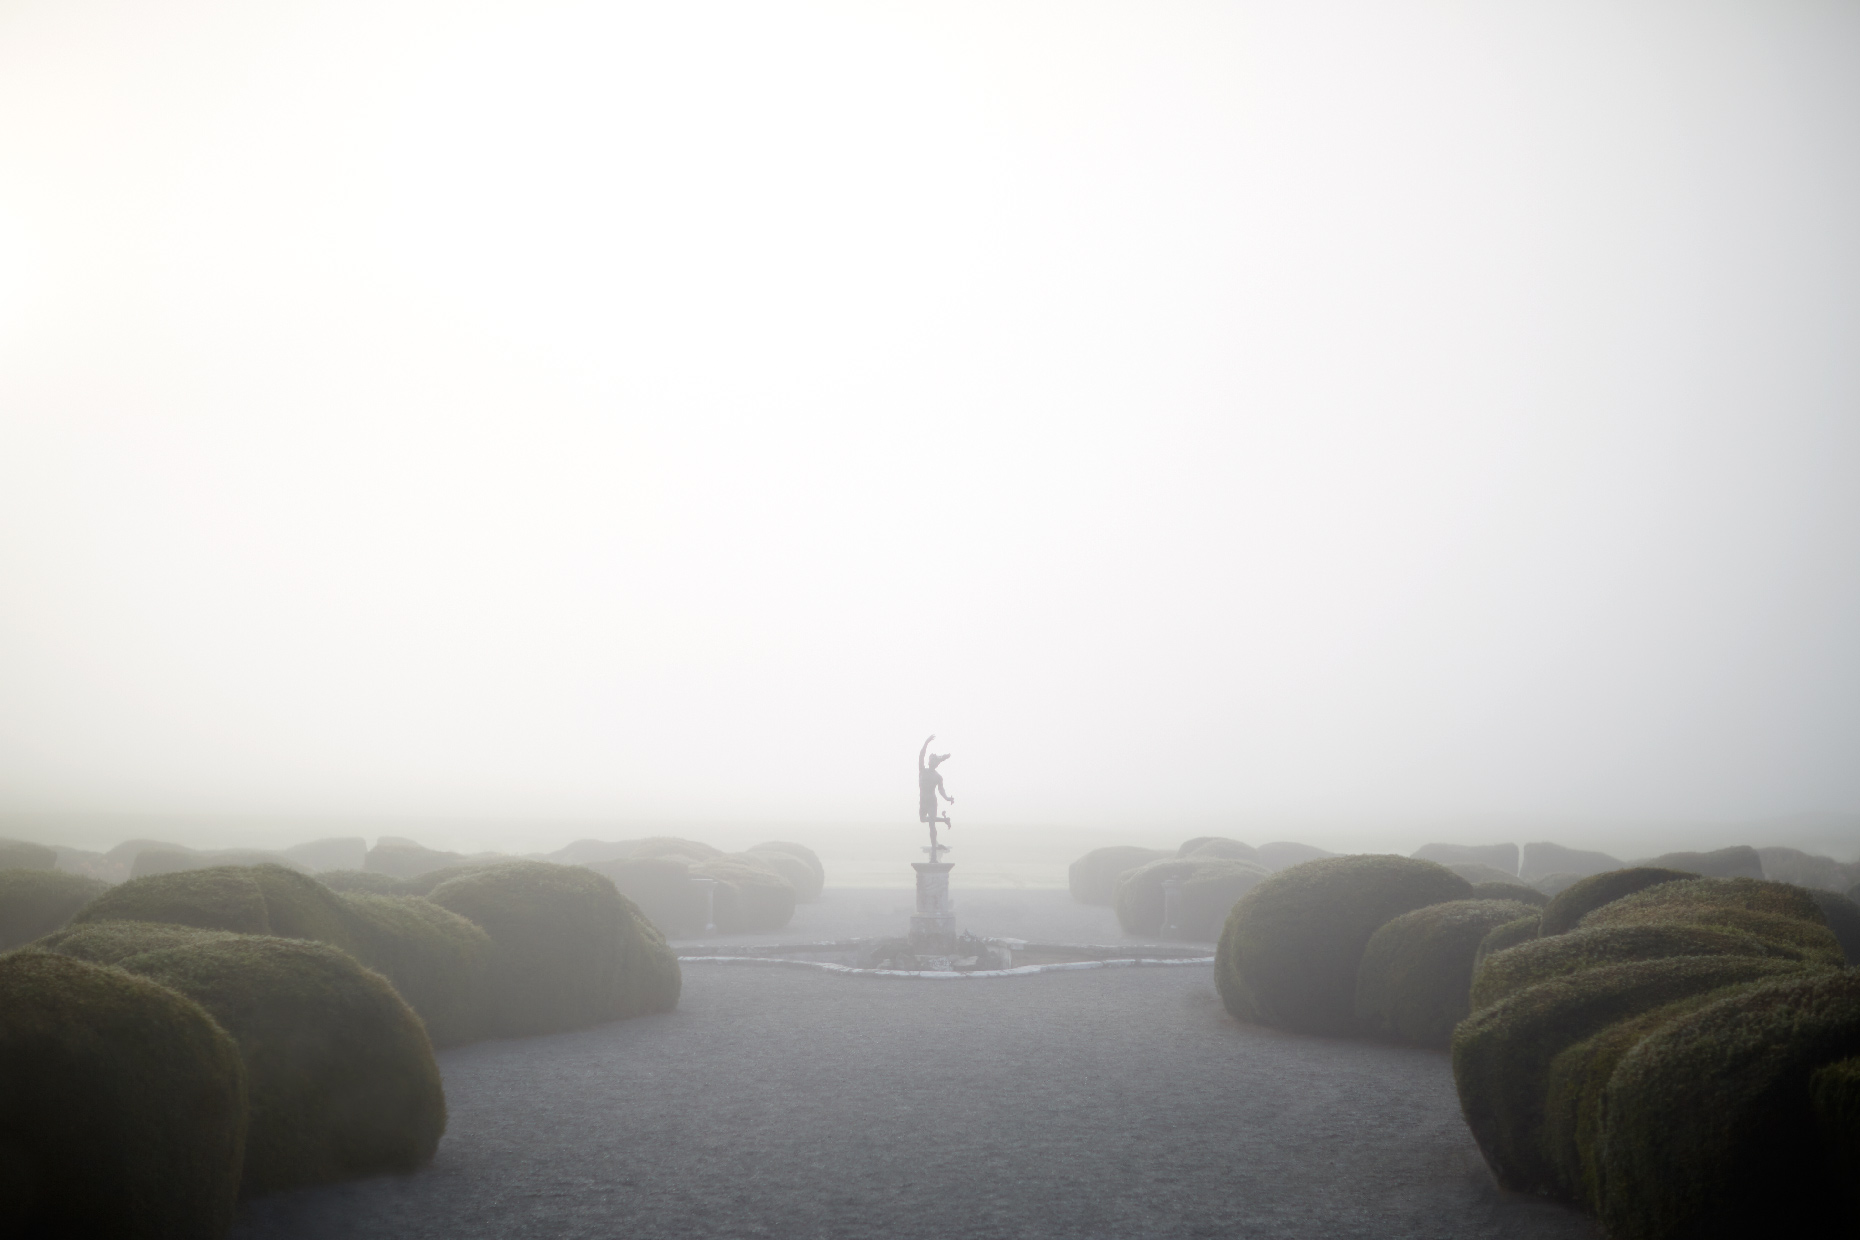 Stacey Van Berkel Photography I Statue at Carton House in the early morning fog I Kildare, Ireland